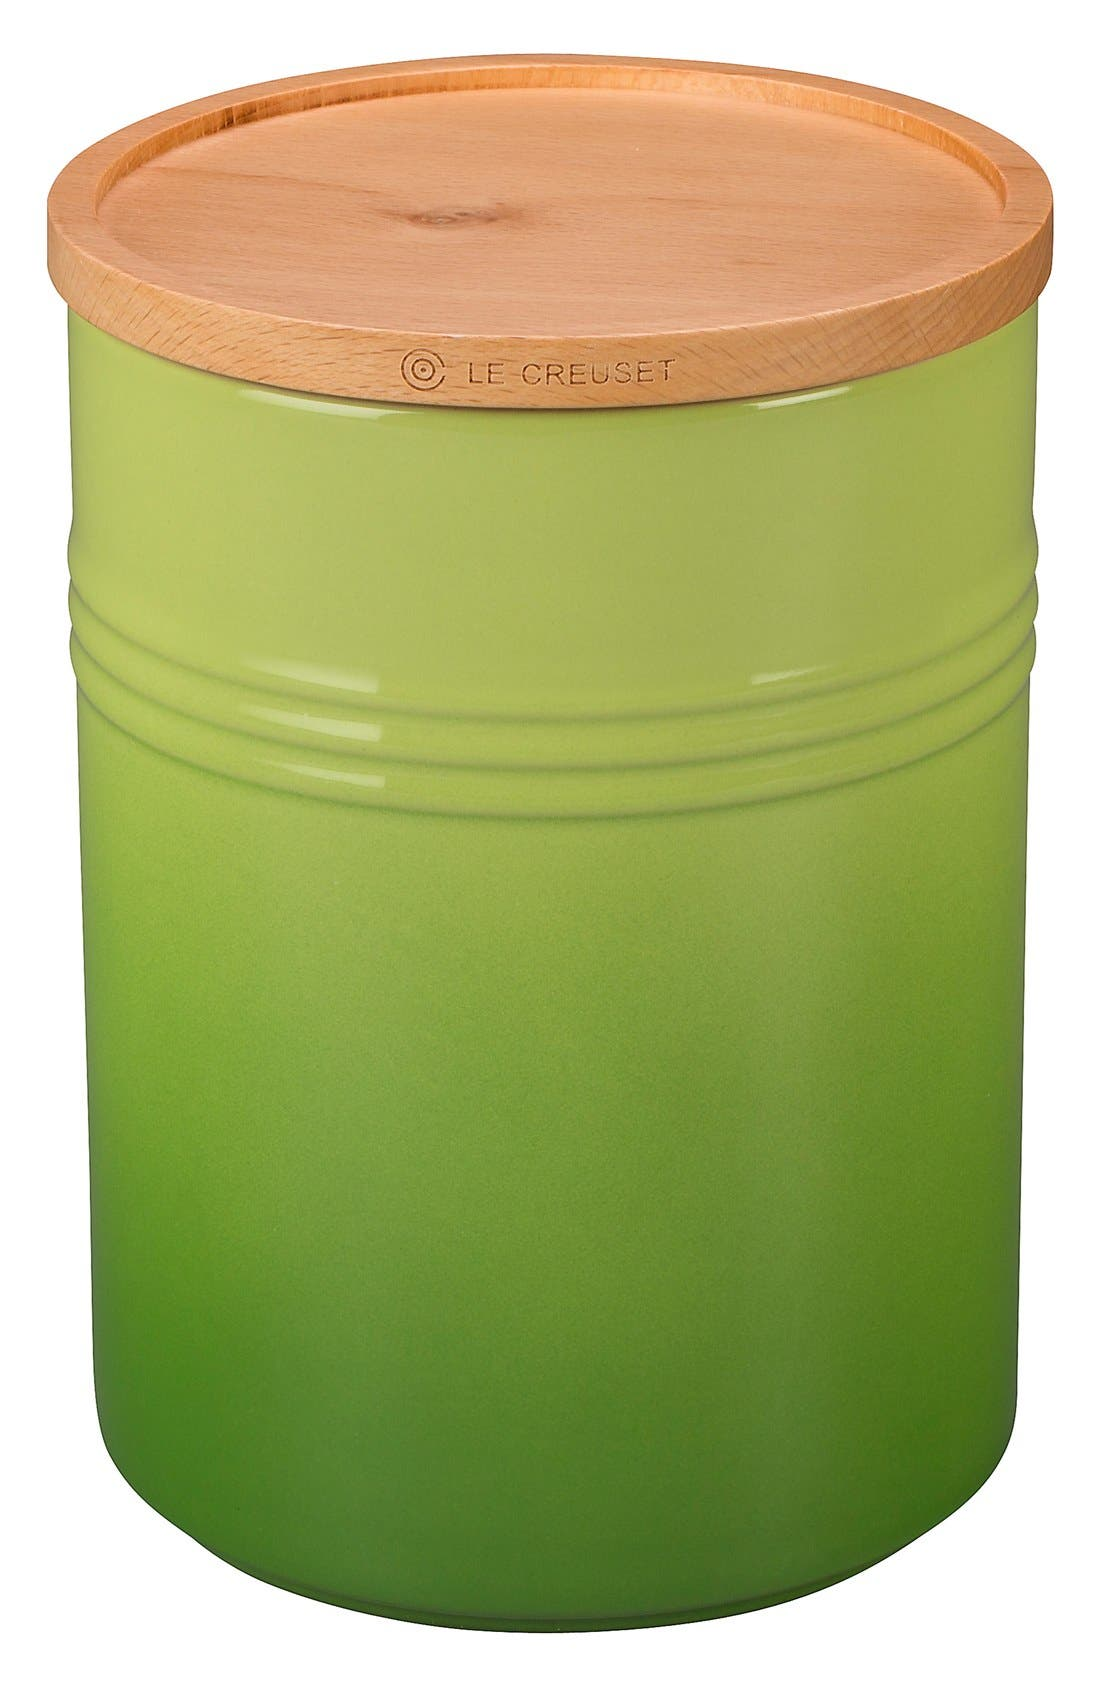 Glazed 22 Ounce Stoneware Storage Canister with Wooden Lid,                         Main,                         color, PALM